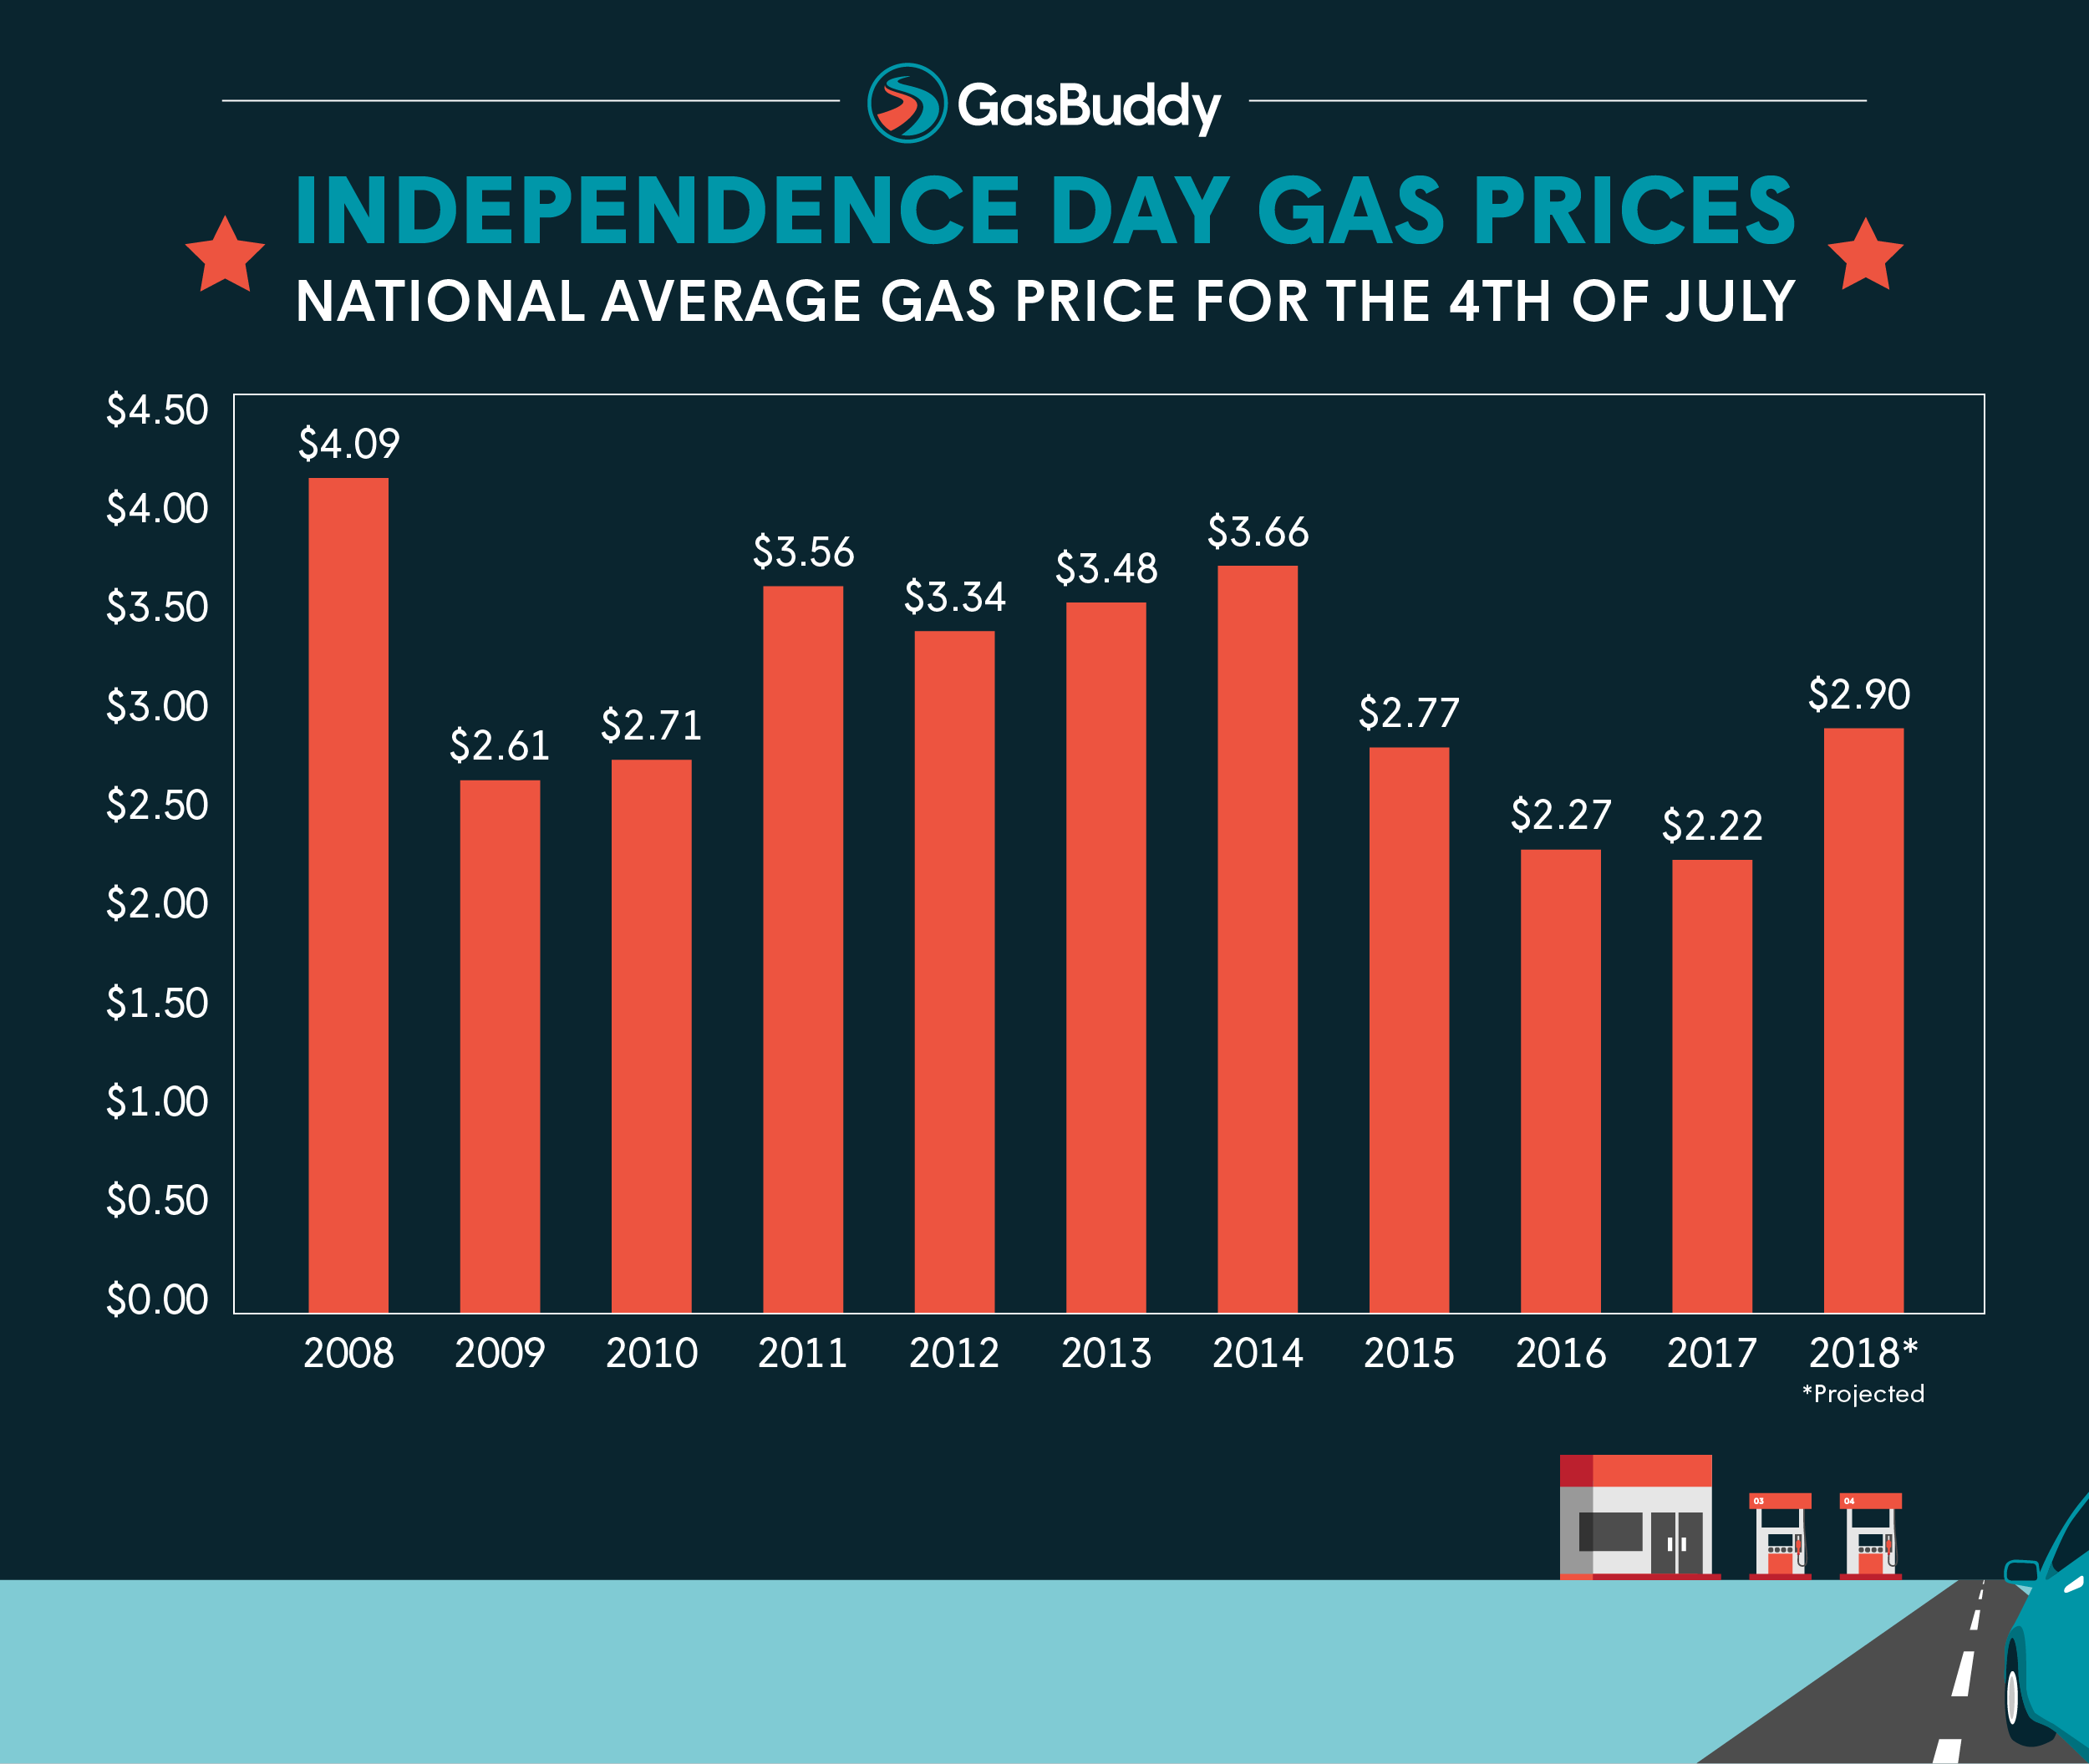 July 4 Gas Prices Highest in Four Years